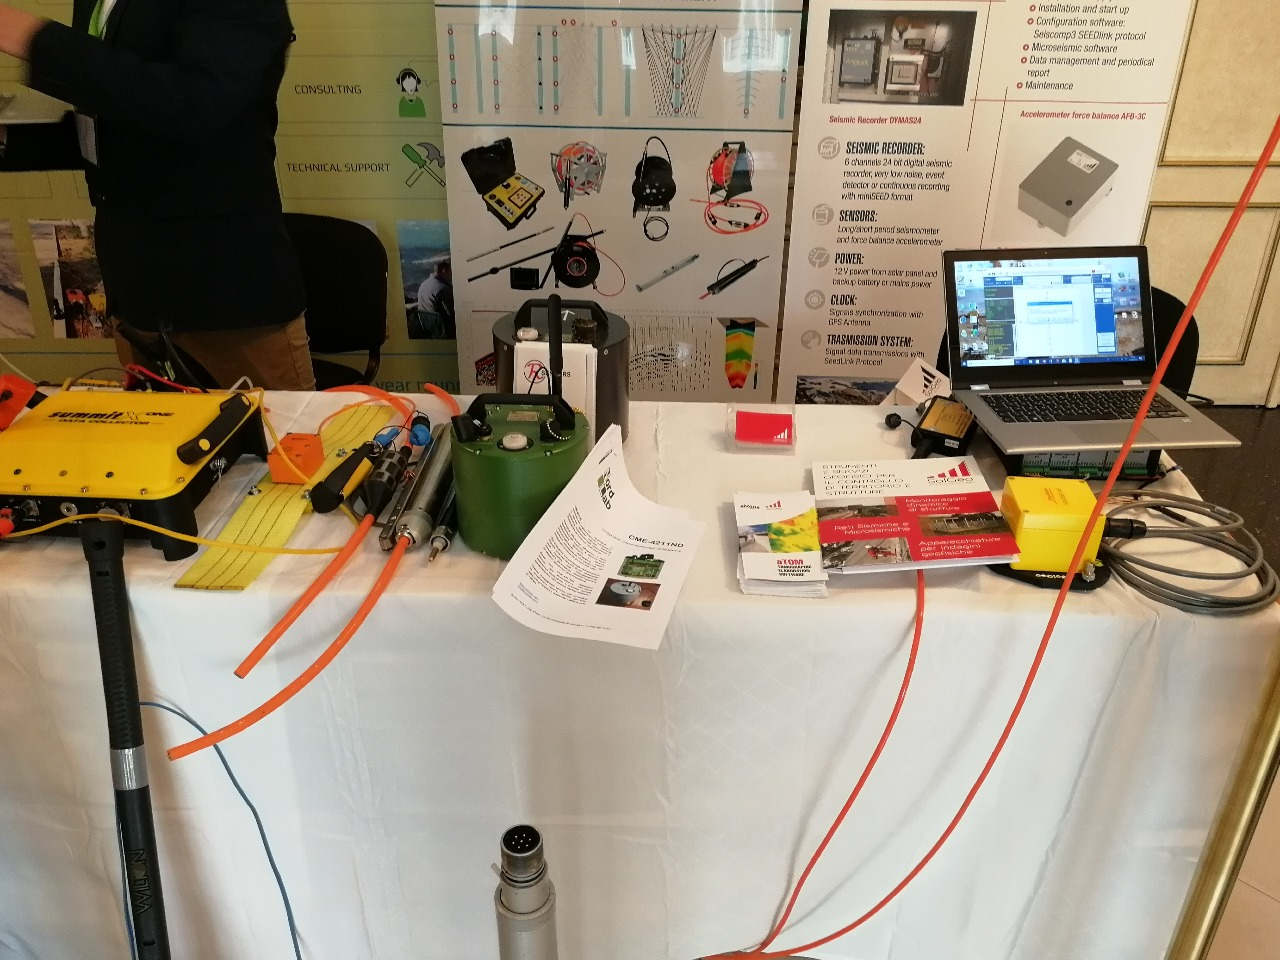 Seismic Sensors And Seismometers R Llc Sismografo Vibration Sensor Instruments By Were Presented In The 14th Conference Exhibition Engineering Mining Geophysics 2018 Held European